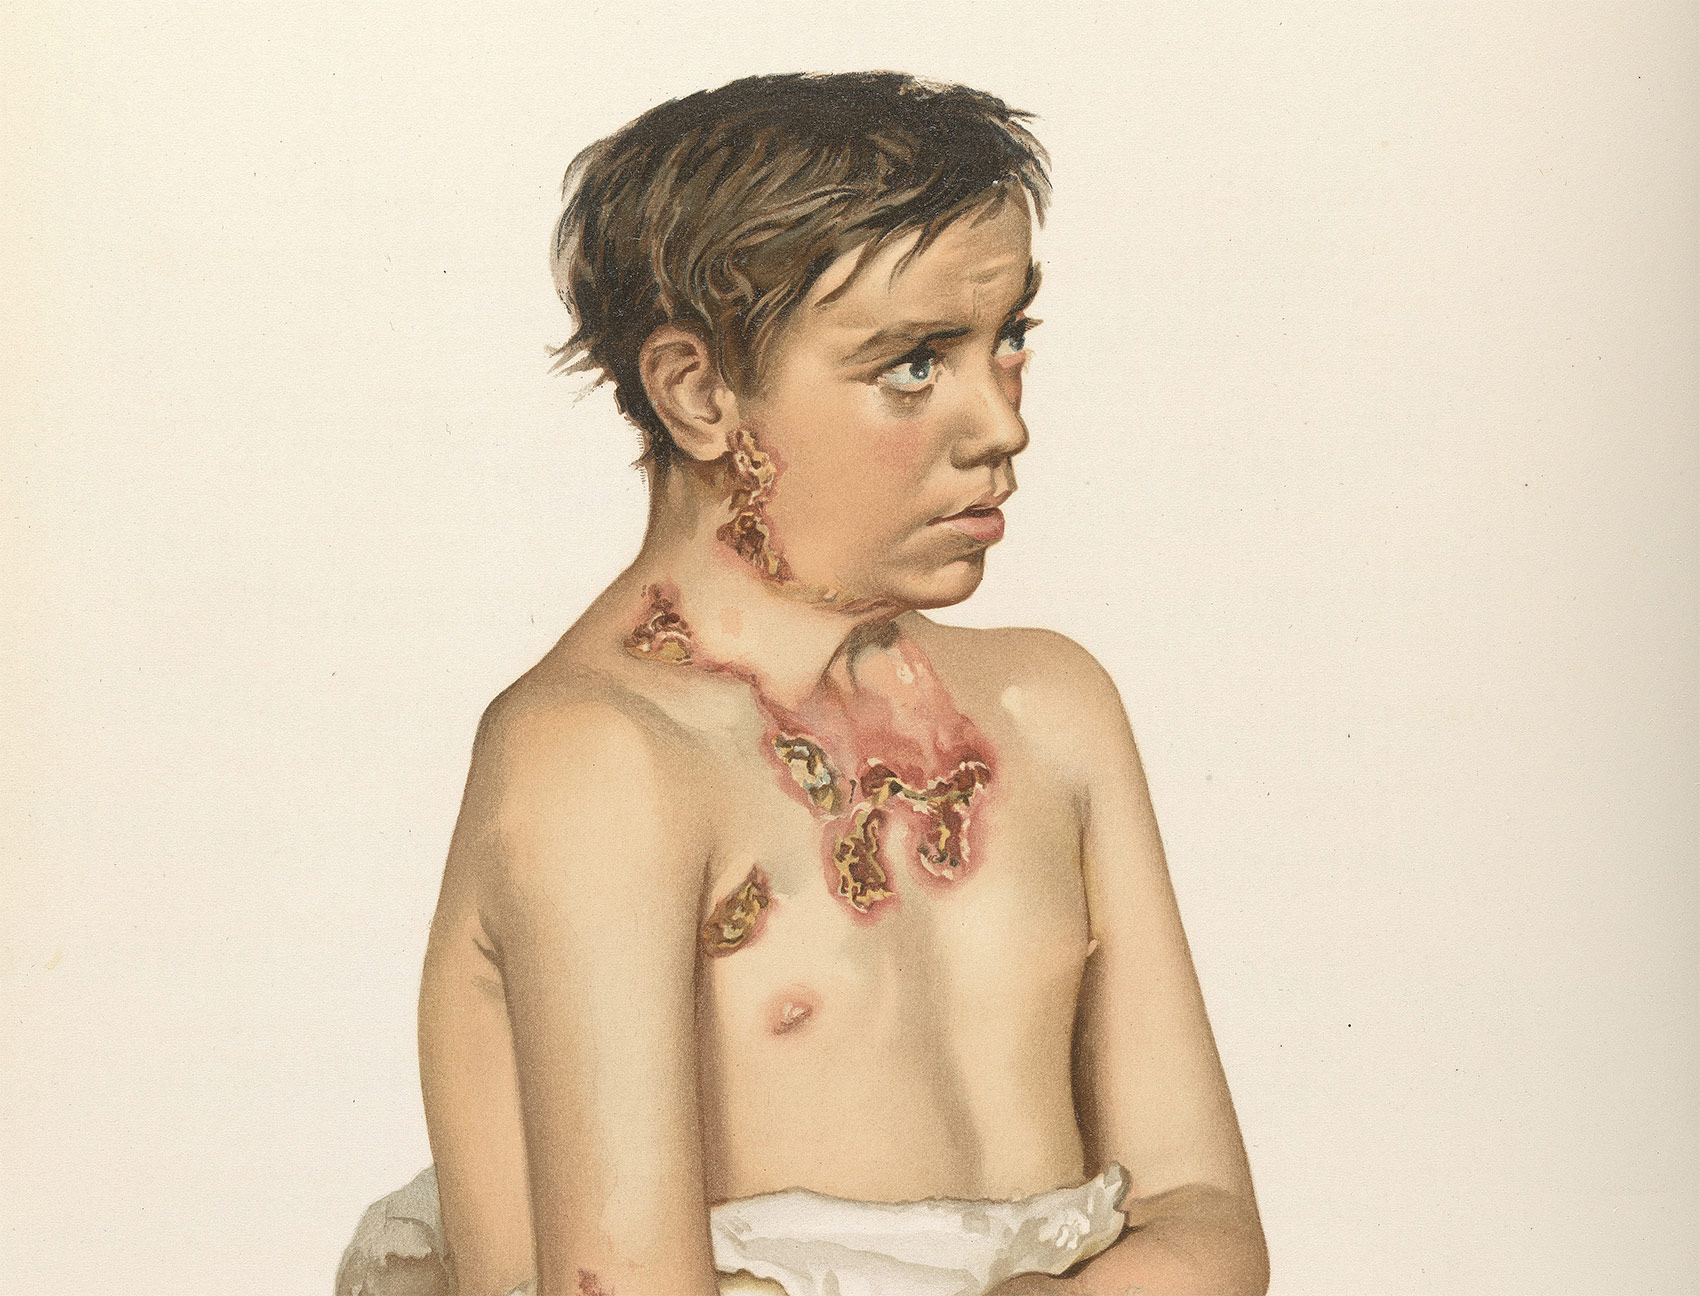 'A young man with scrofula', Atlas of Clinical Medicine, 1892-96.